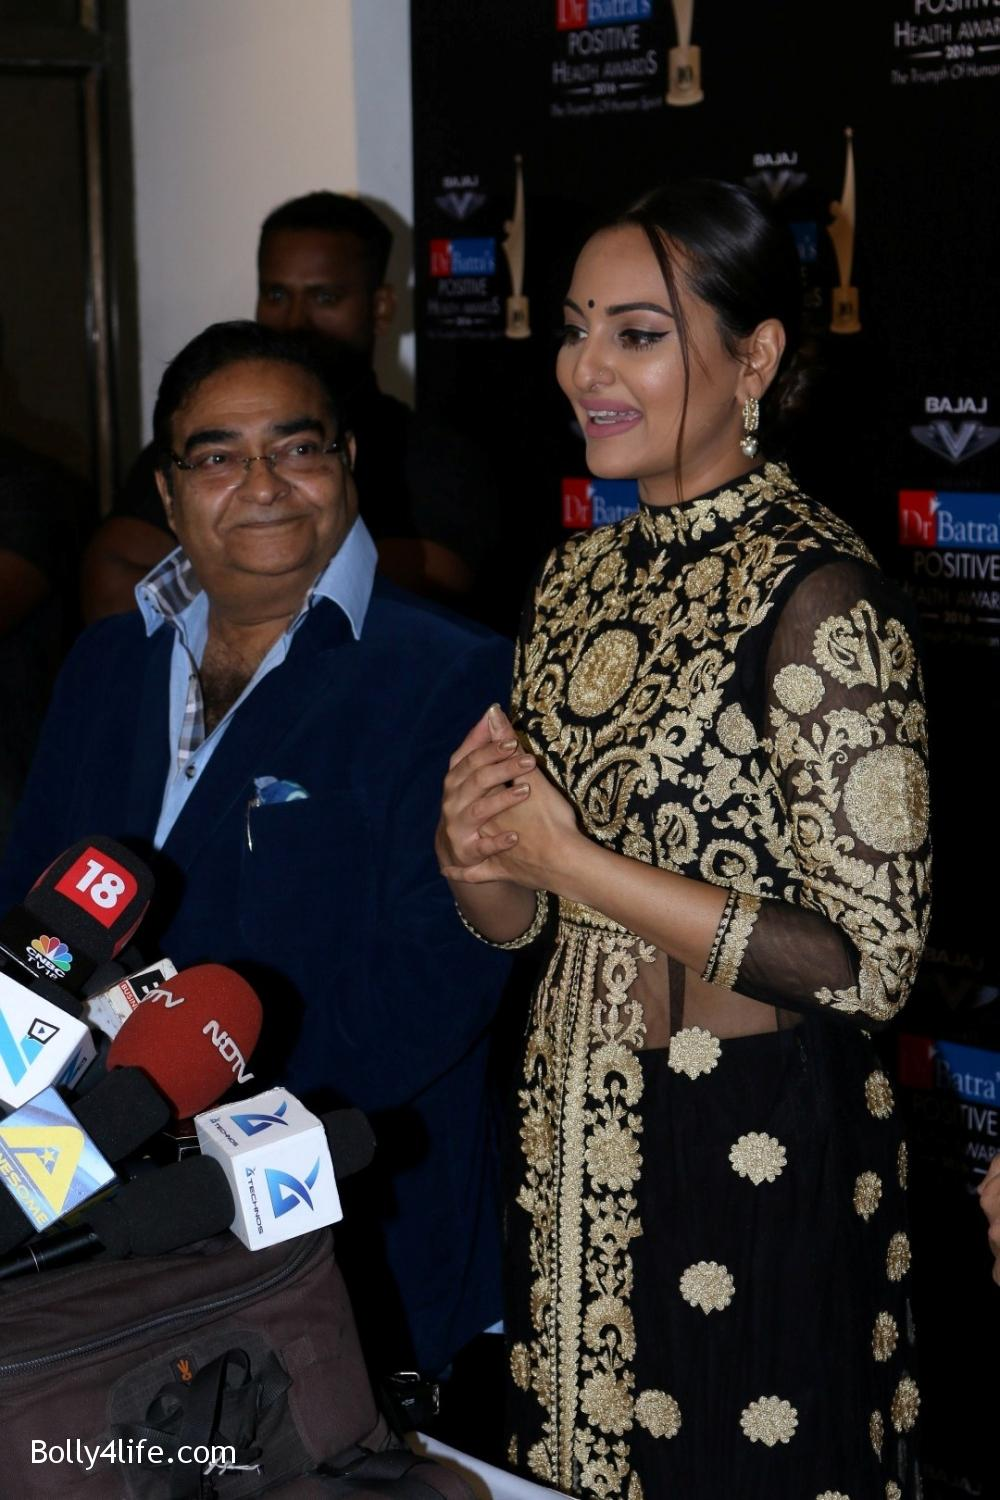 Sonakshi-Sinha-during-Dr-Batras-Positive-Health-Awards-2016-10.jpg